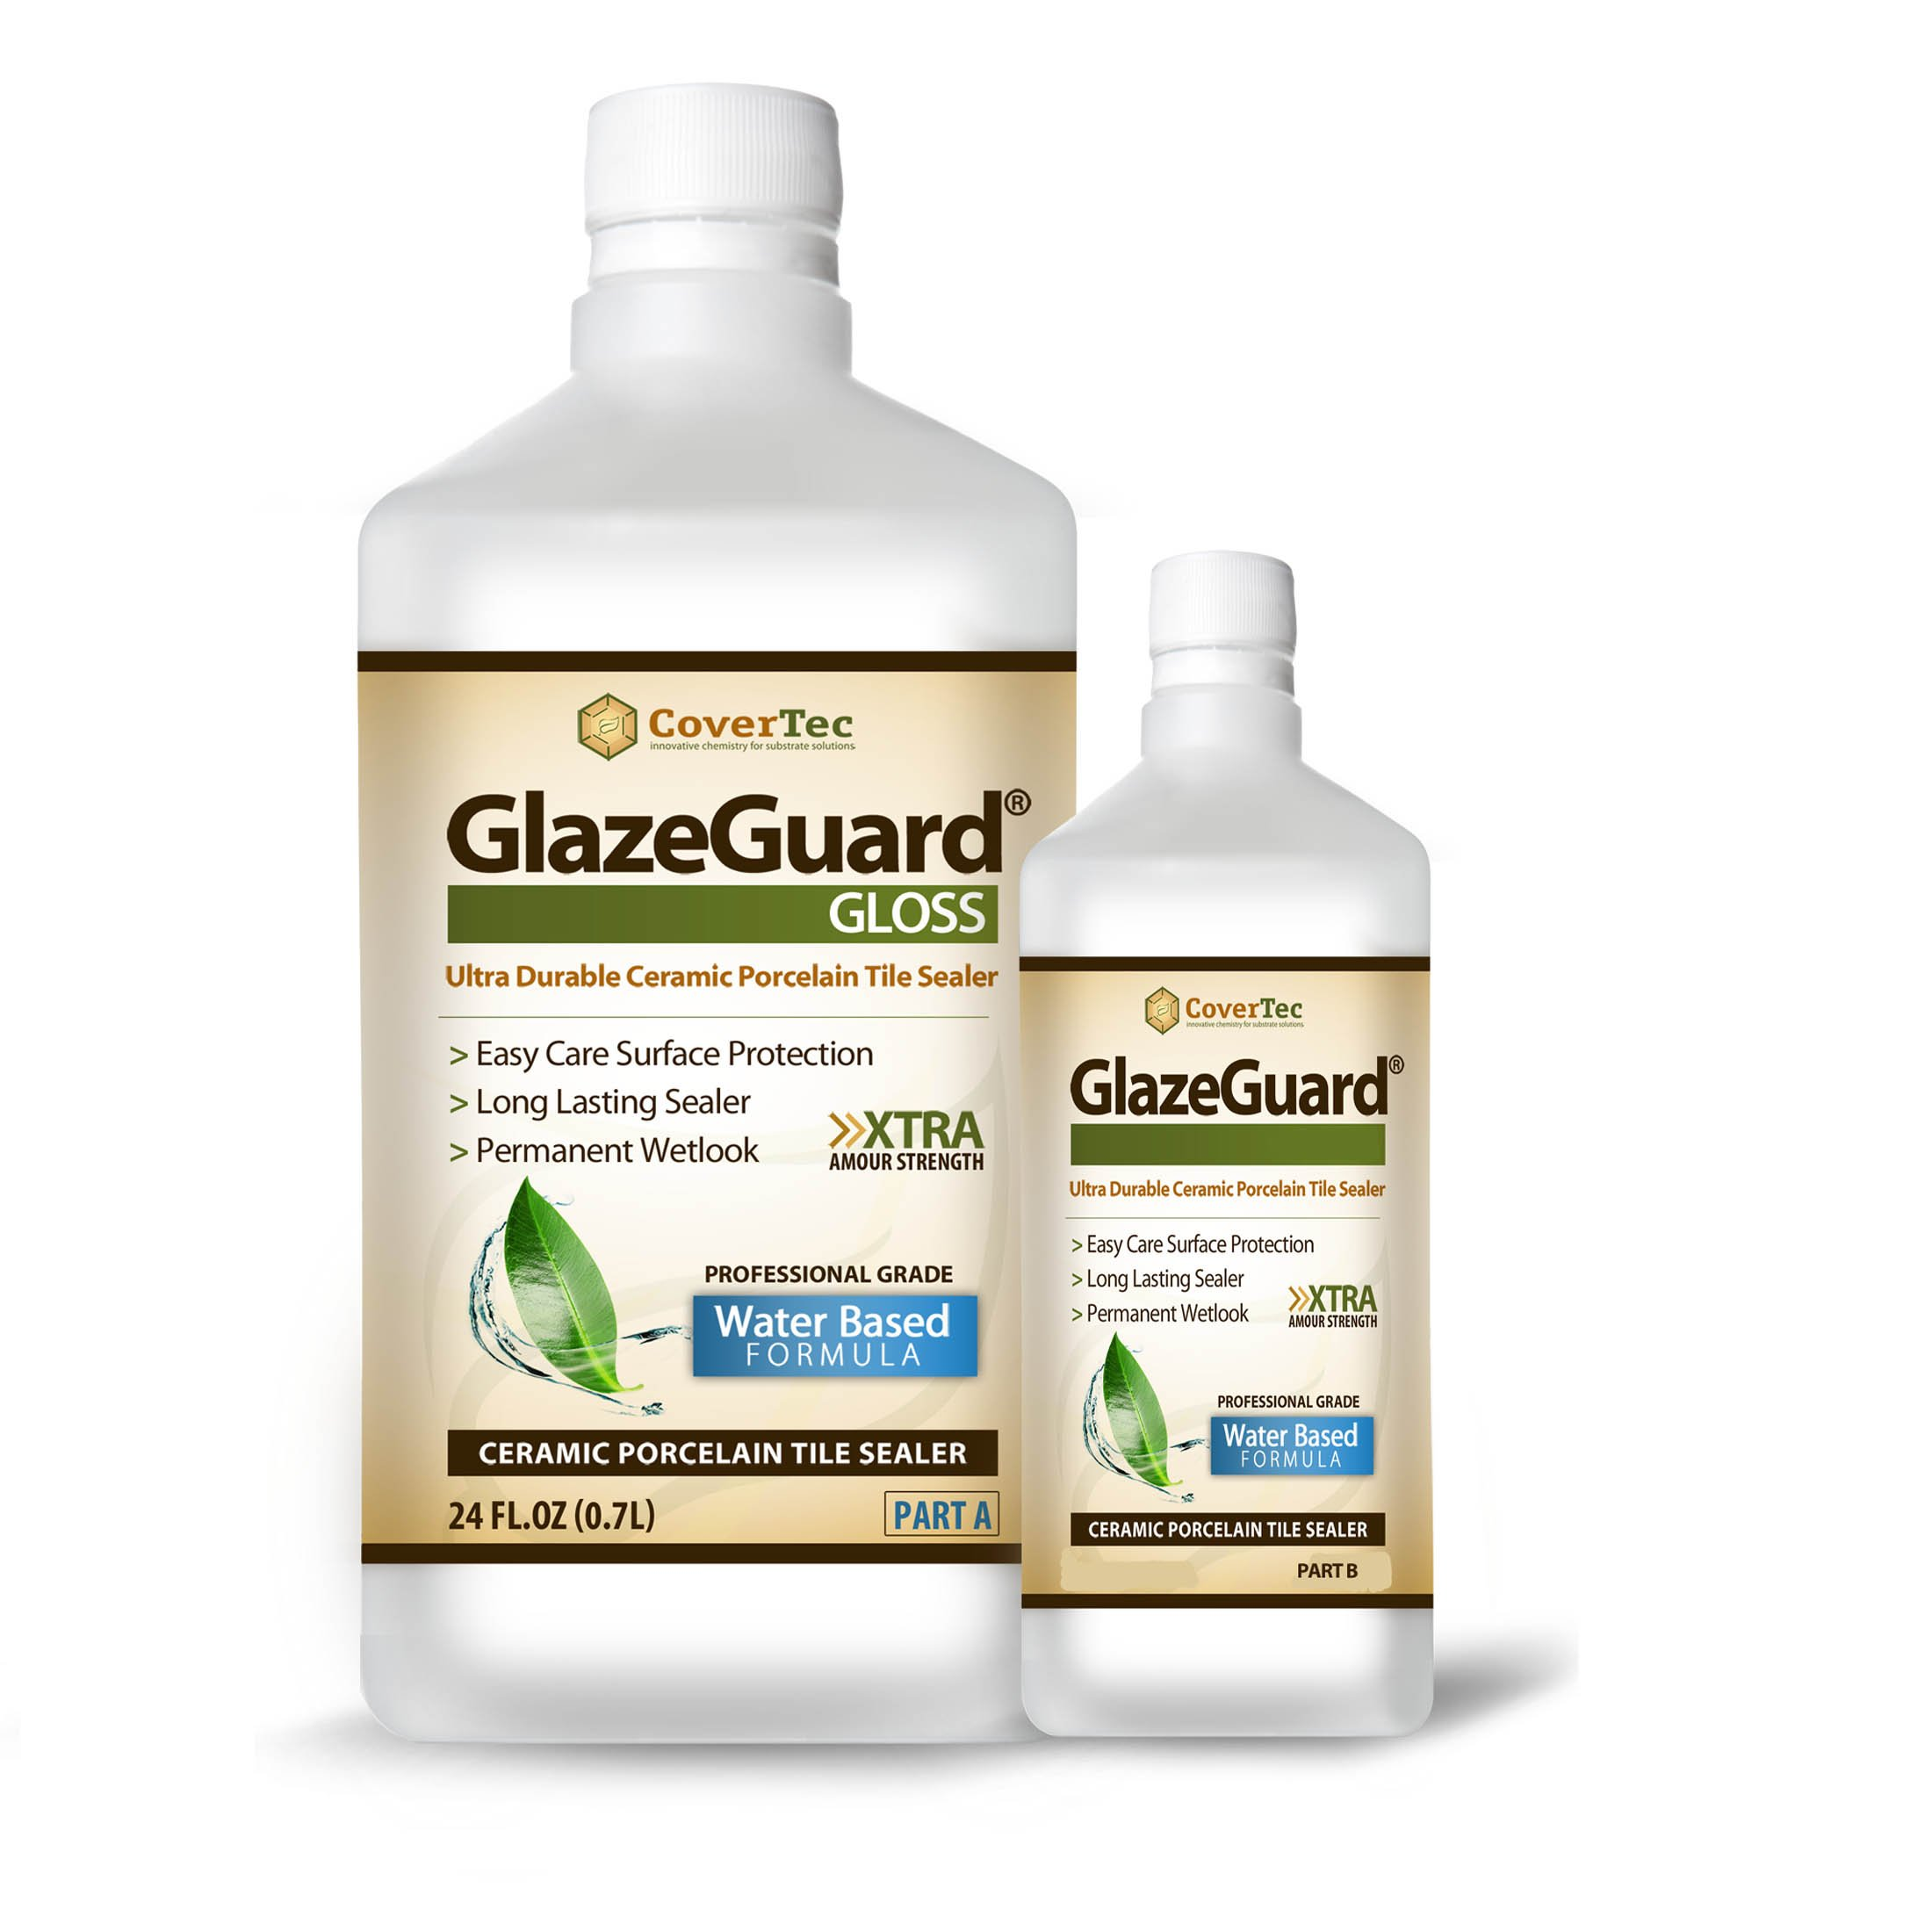 GlazeGuard Gloss Floor/Wall Sealer for Ceramic, Porcelain, Stone Tile Surfaces - 1 Qrt (2) Part Kit